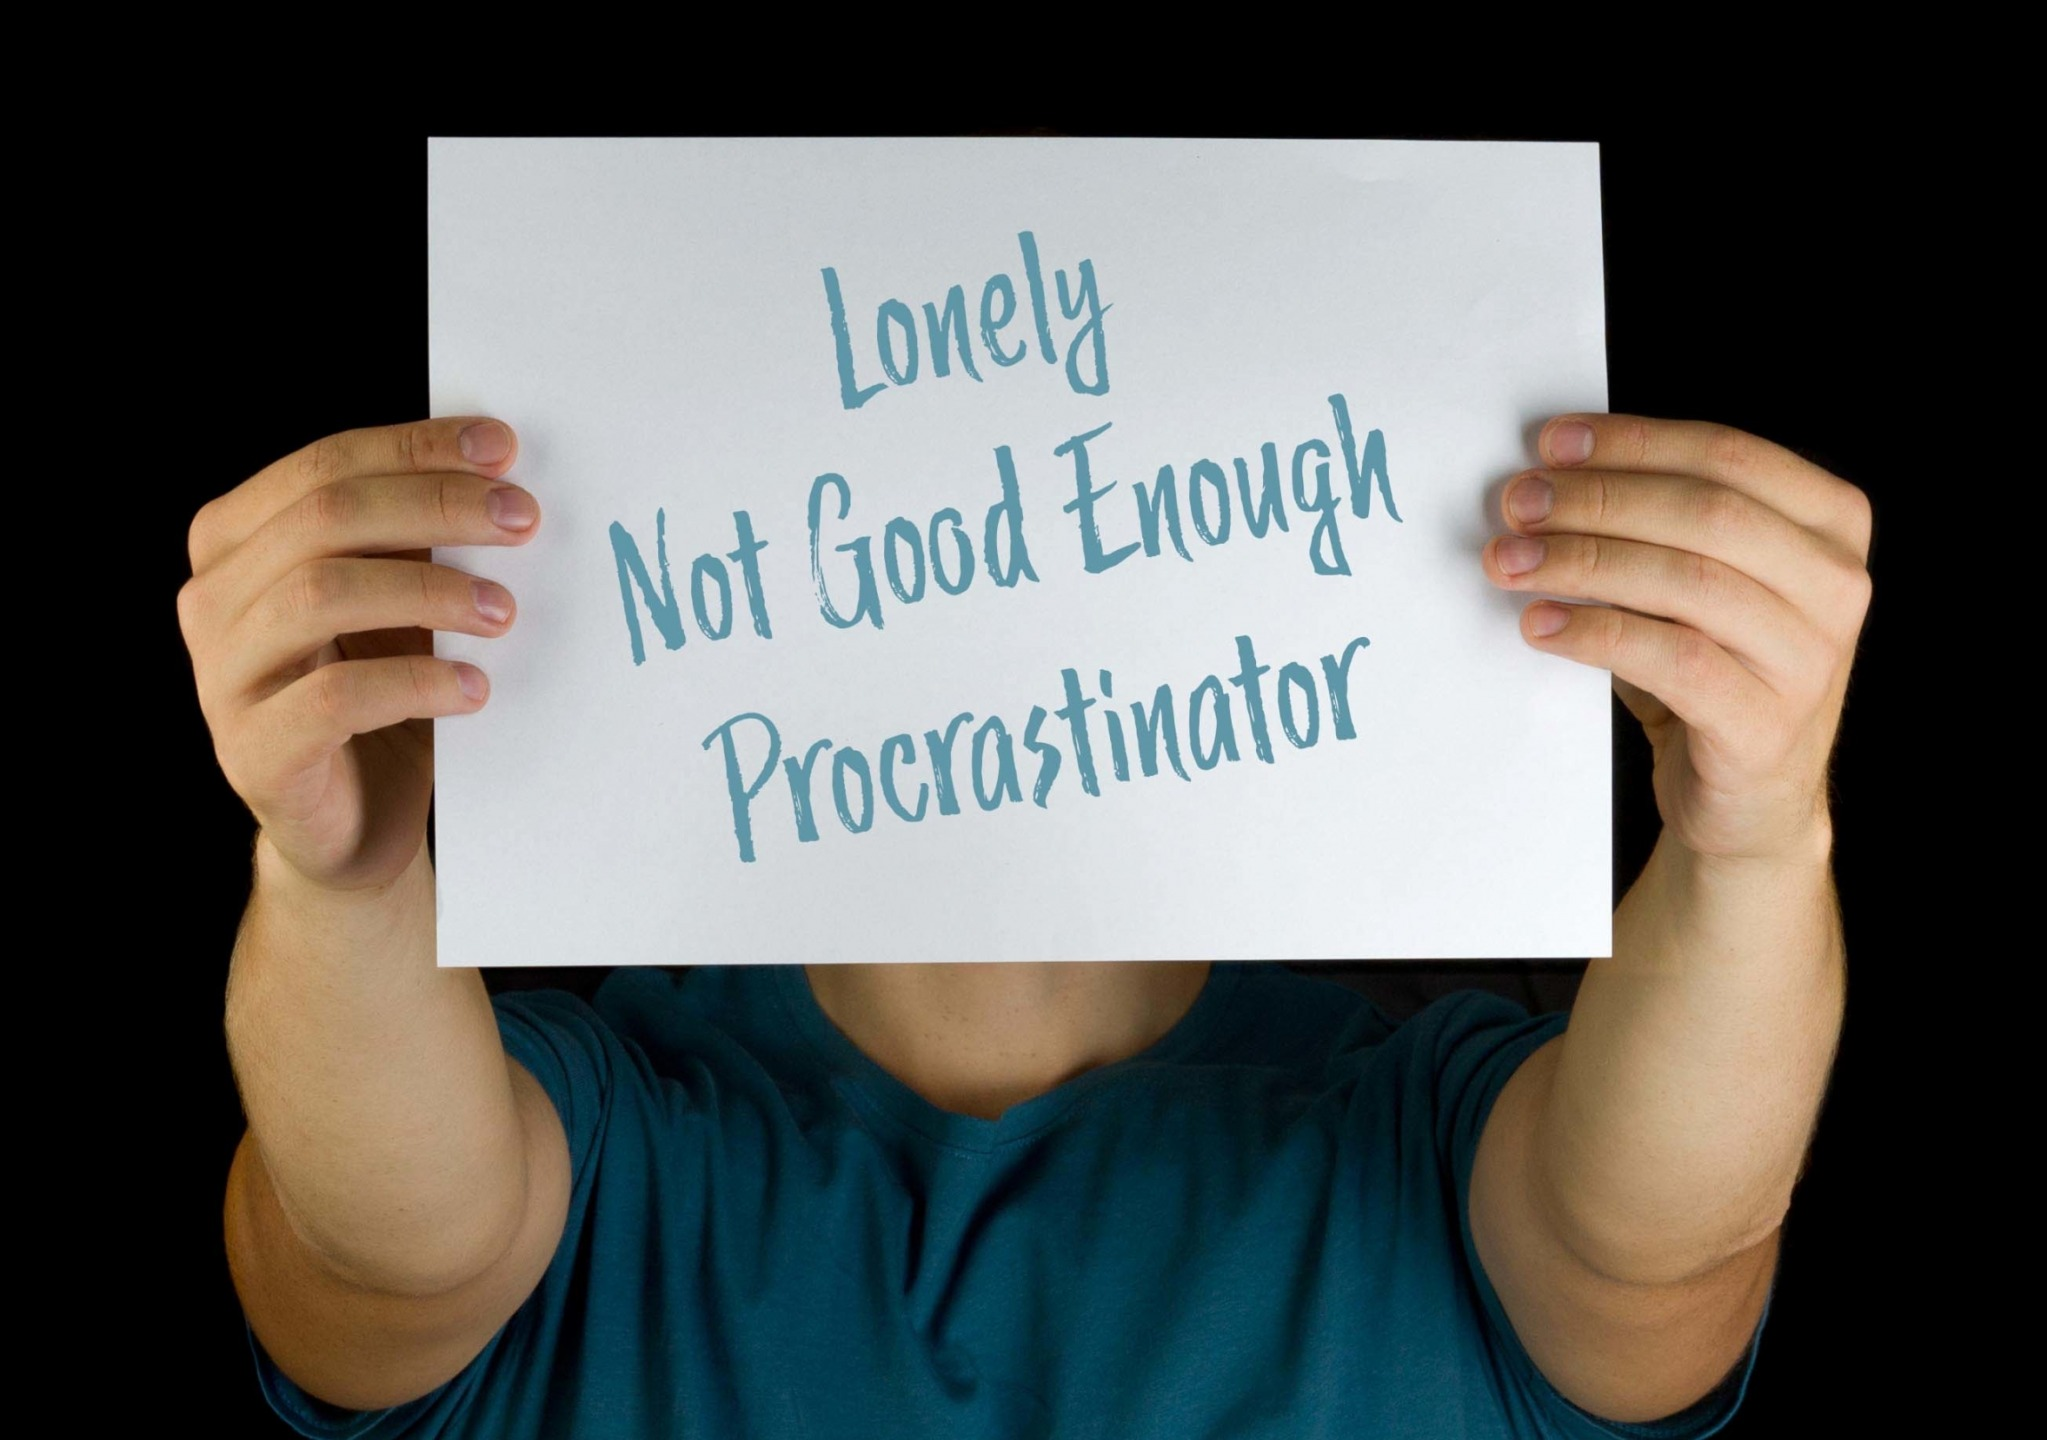 """Stock Photo of a Held Out Poster Reading """"Lonely / Not Good Enough / Procrastinator"""